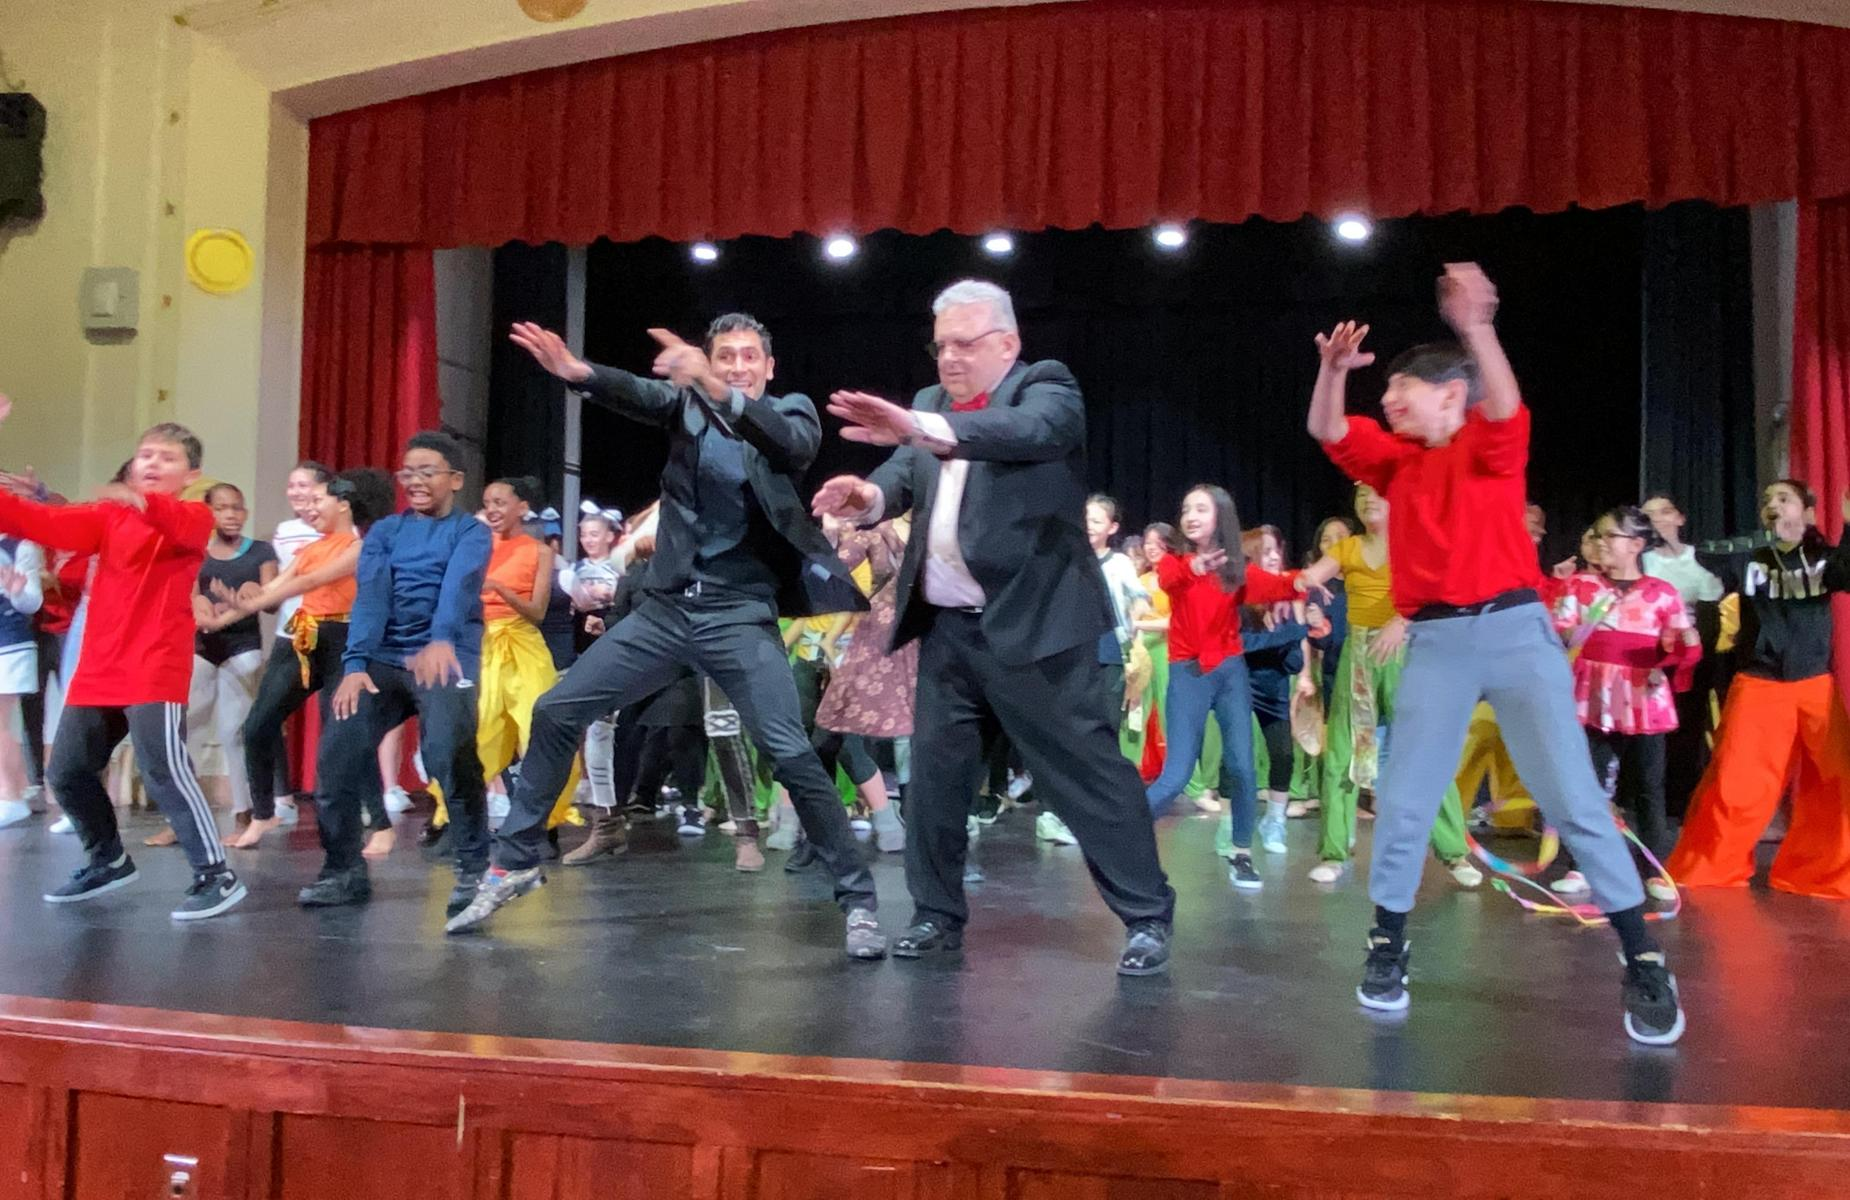 Principal D'Angelo and students dancing together on stage